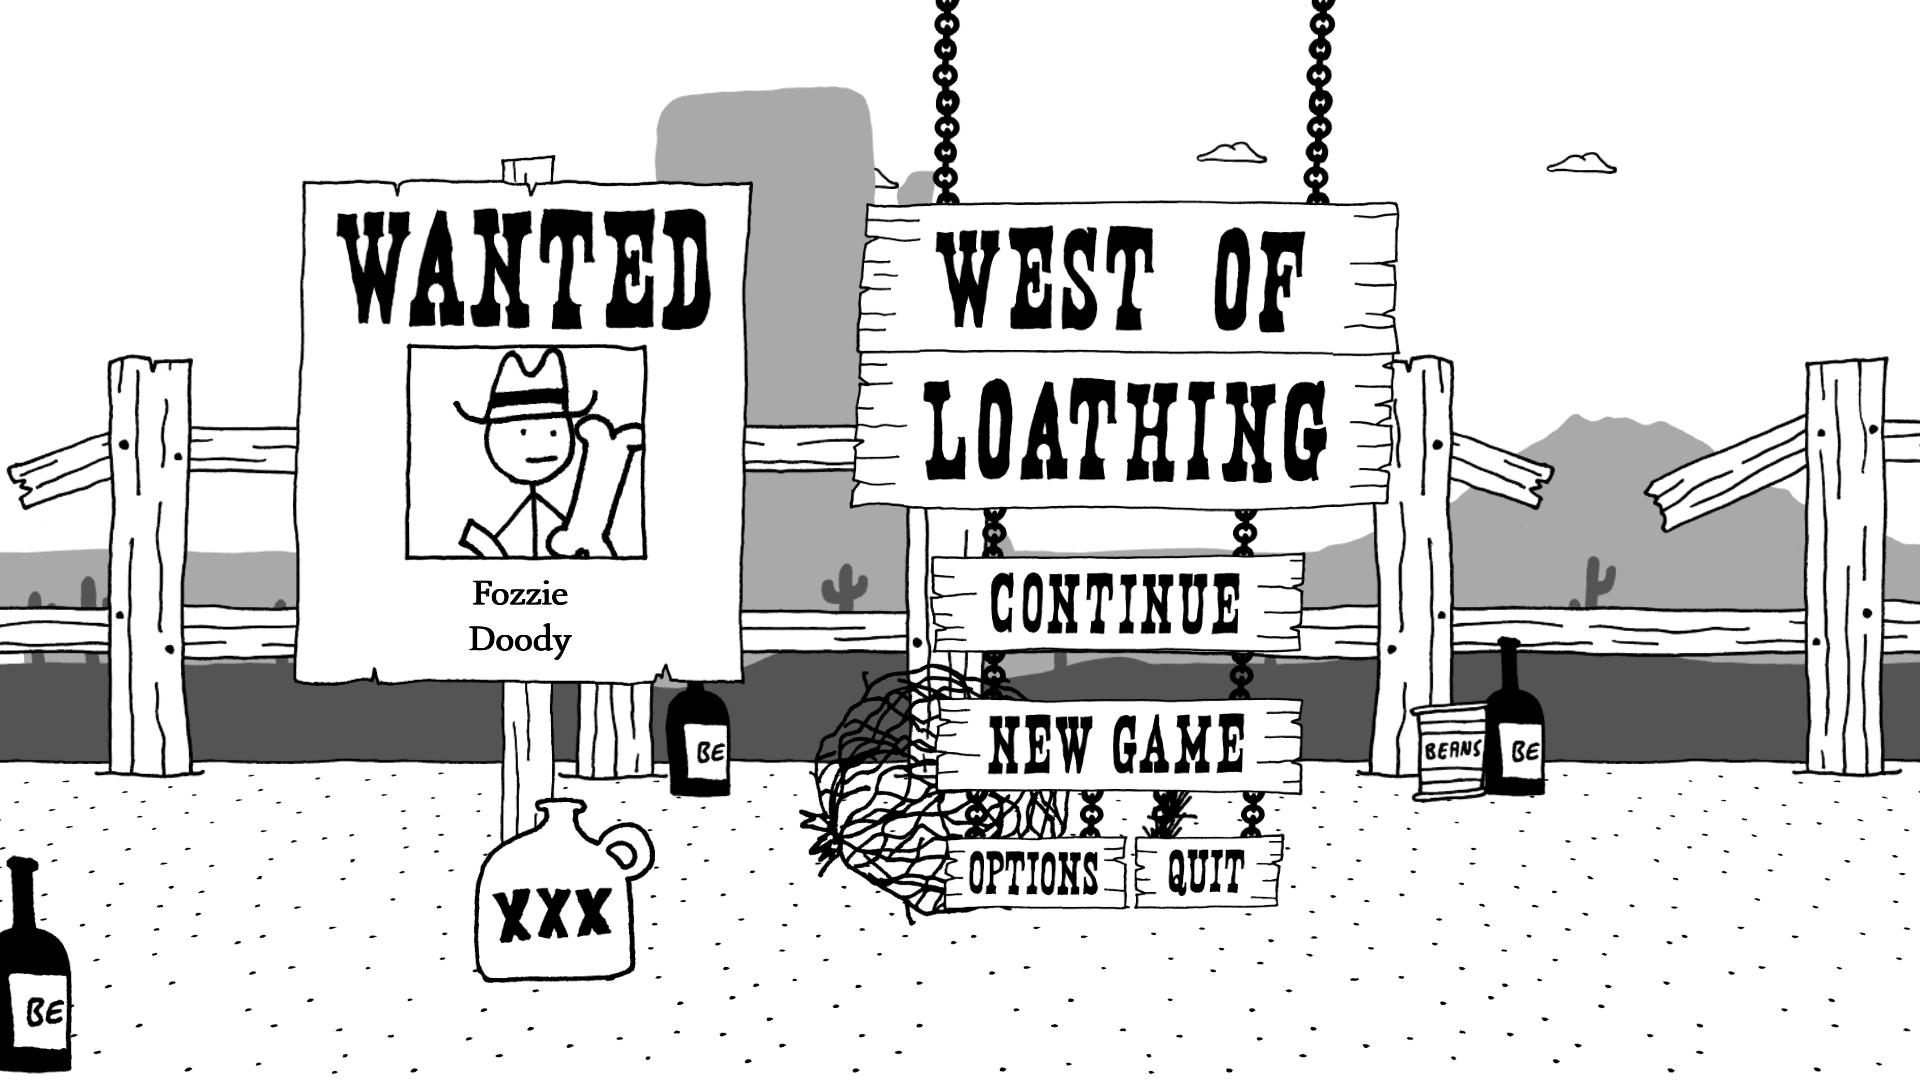 west-of-loathing-2017-08-15-06-11-09-82